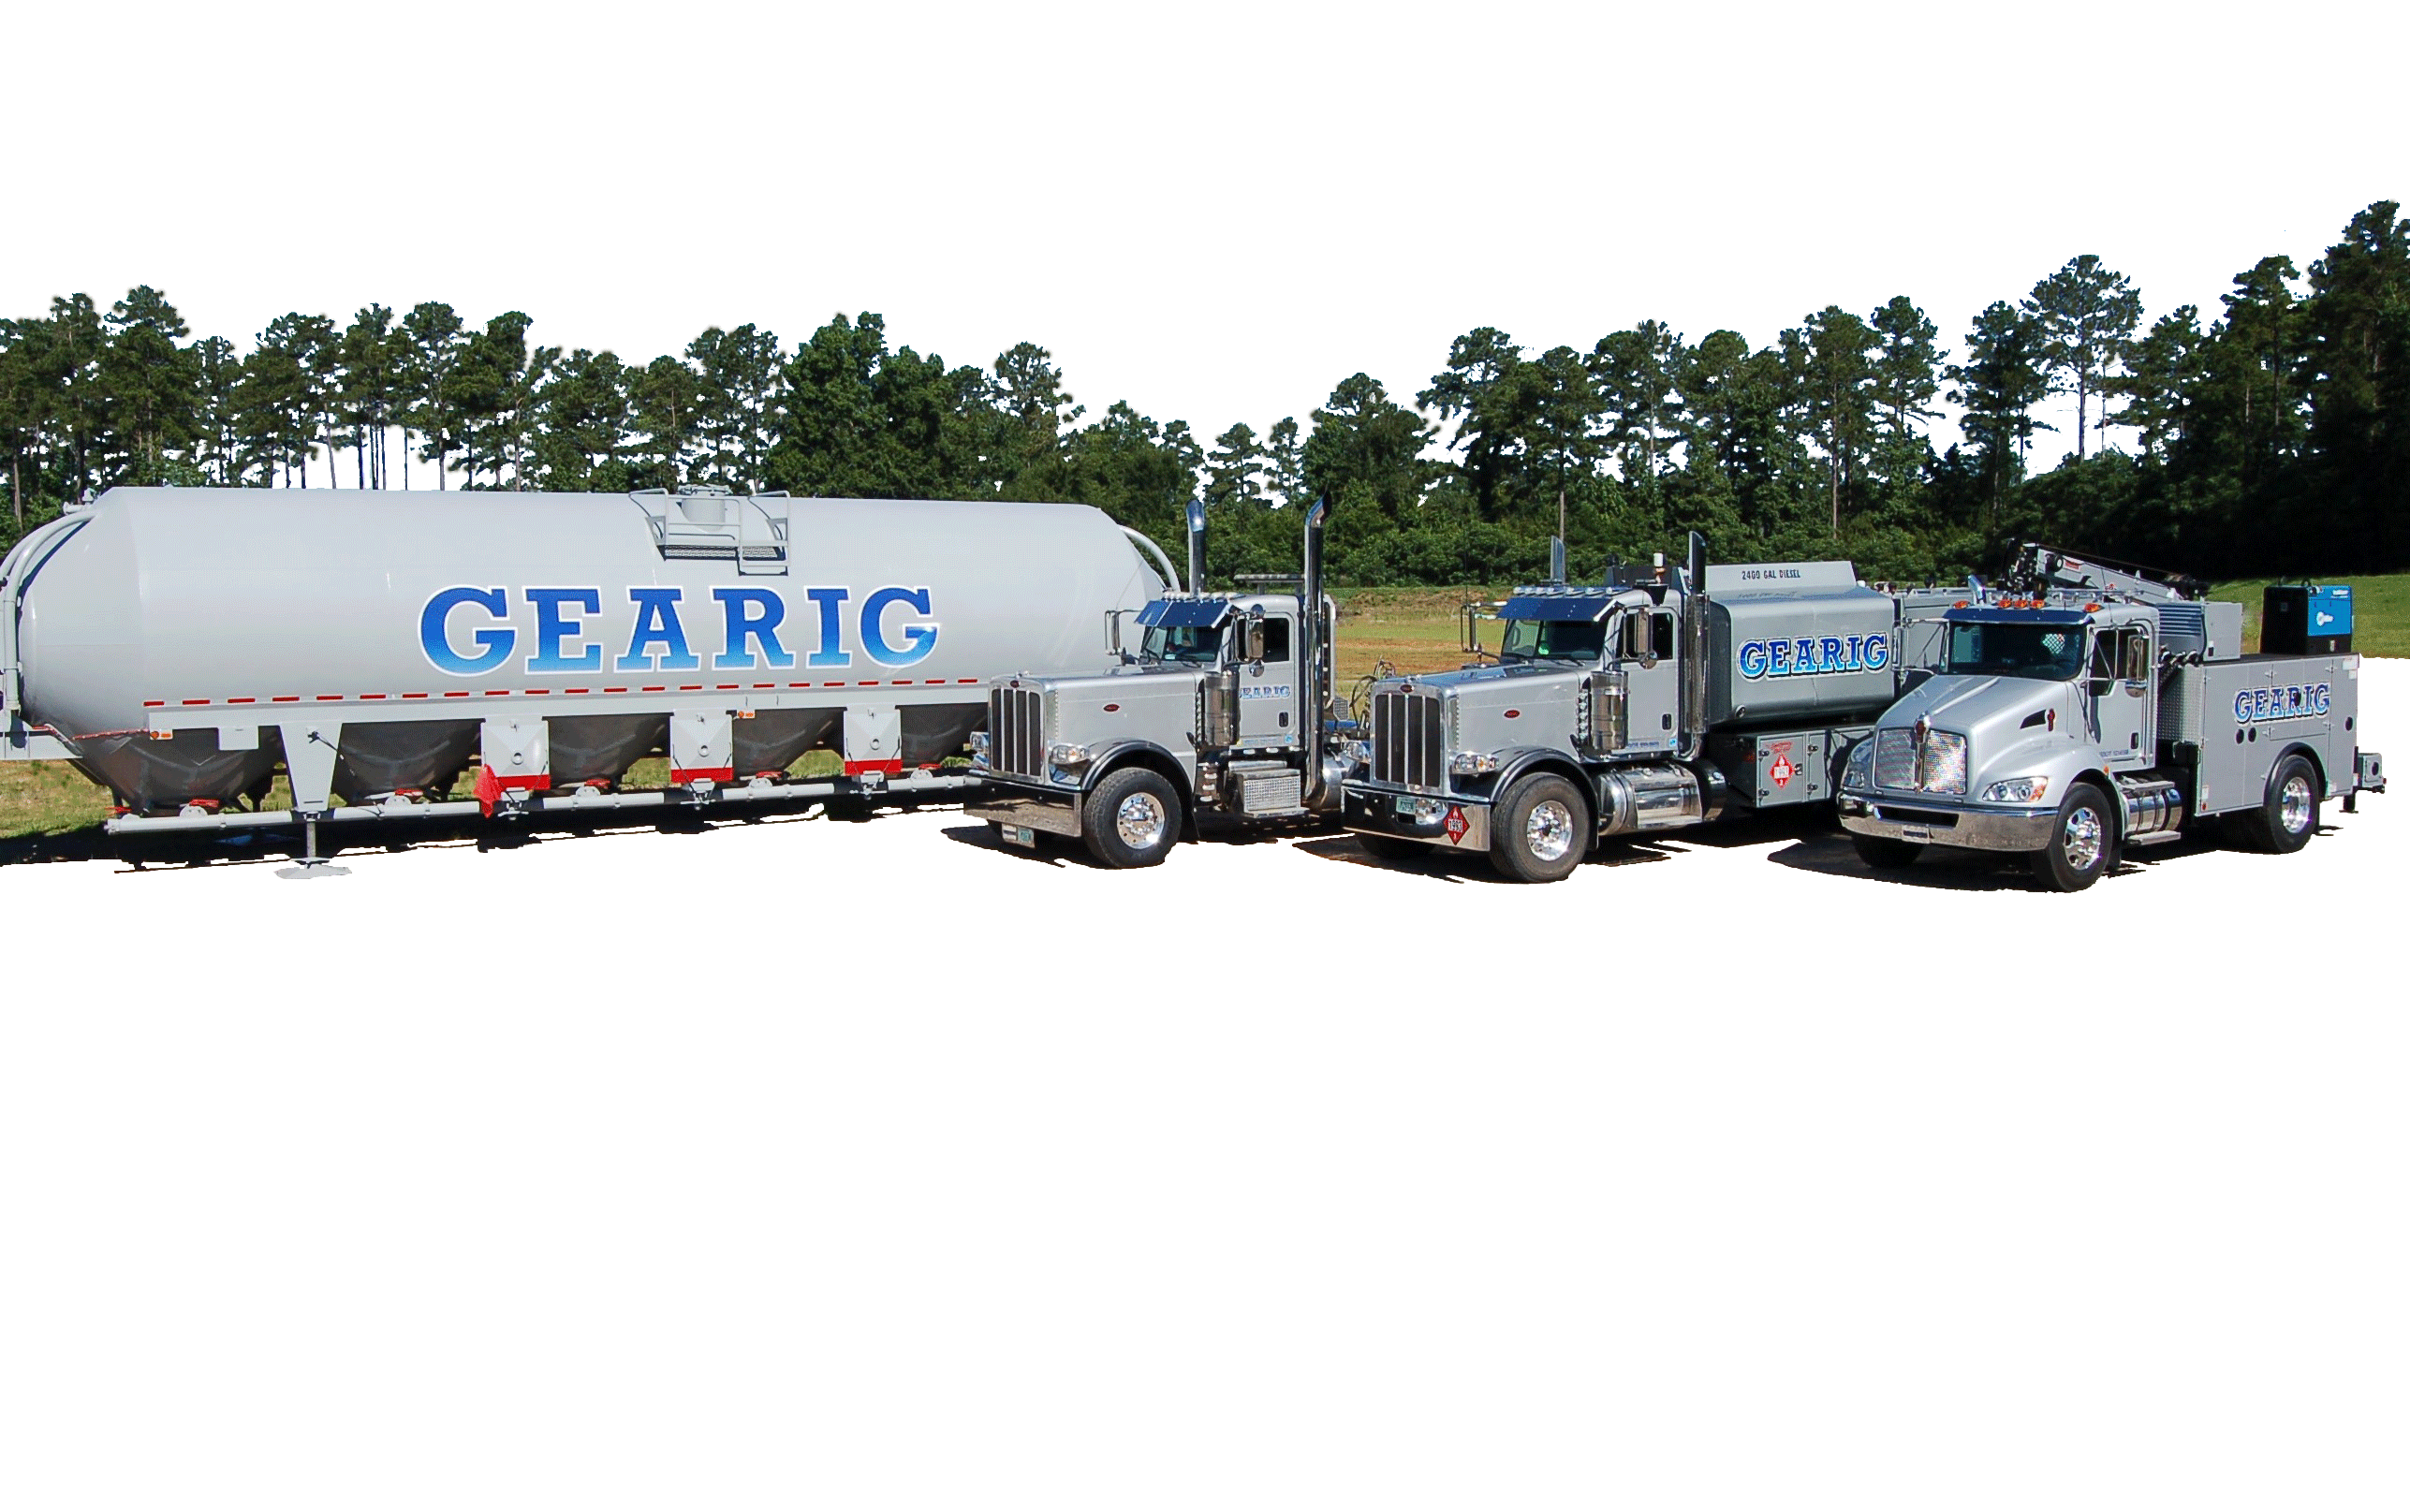 Gearig-Trucks---Straight-Rev-2-Sky-Removed-Trans-PNG8